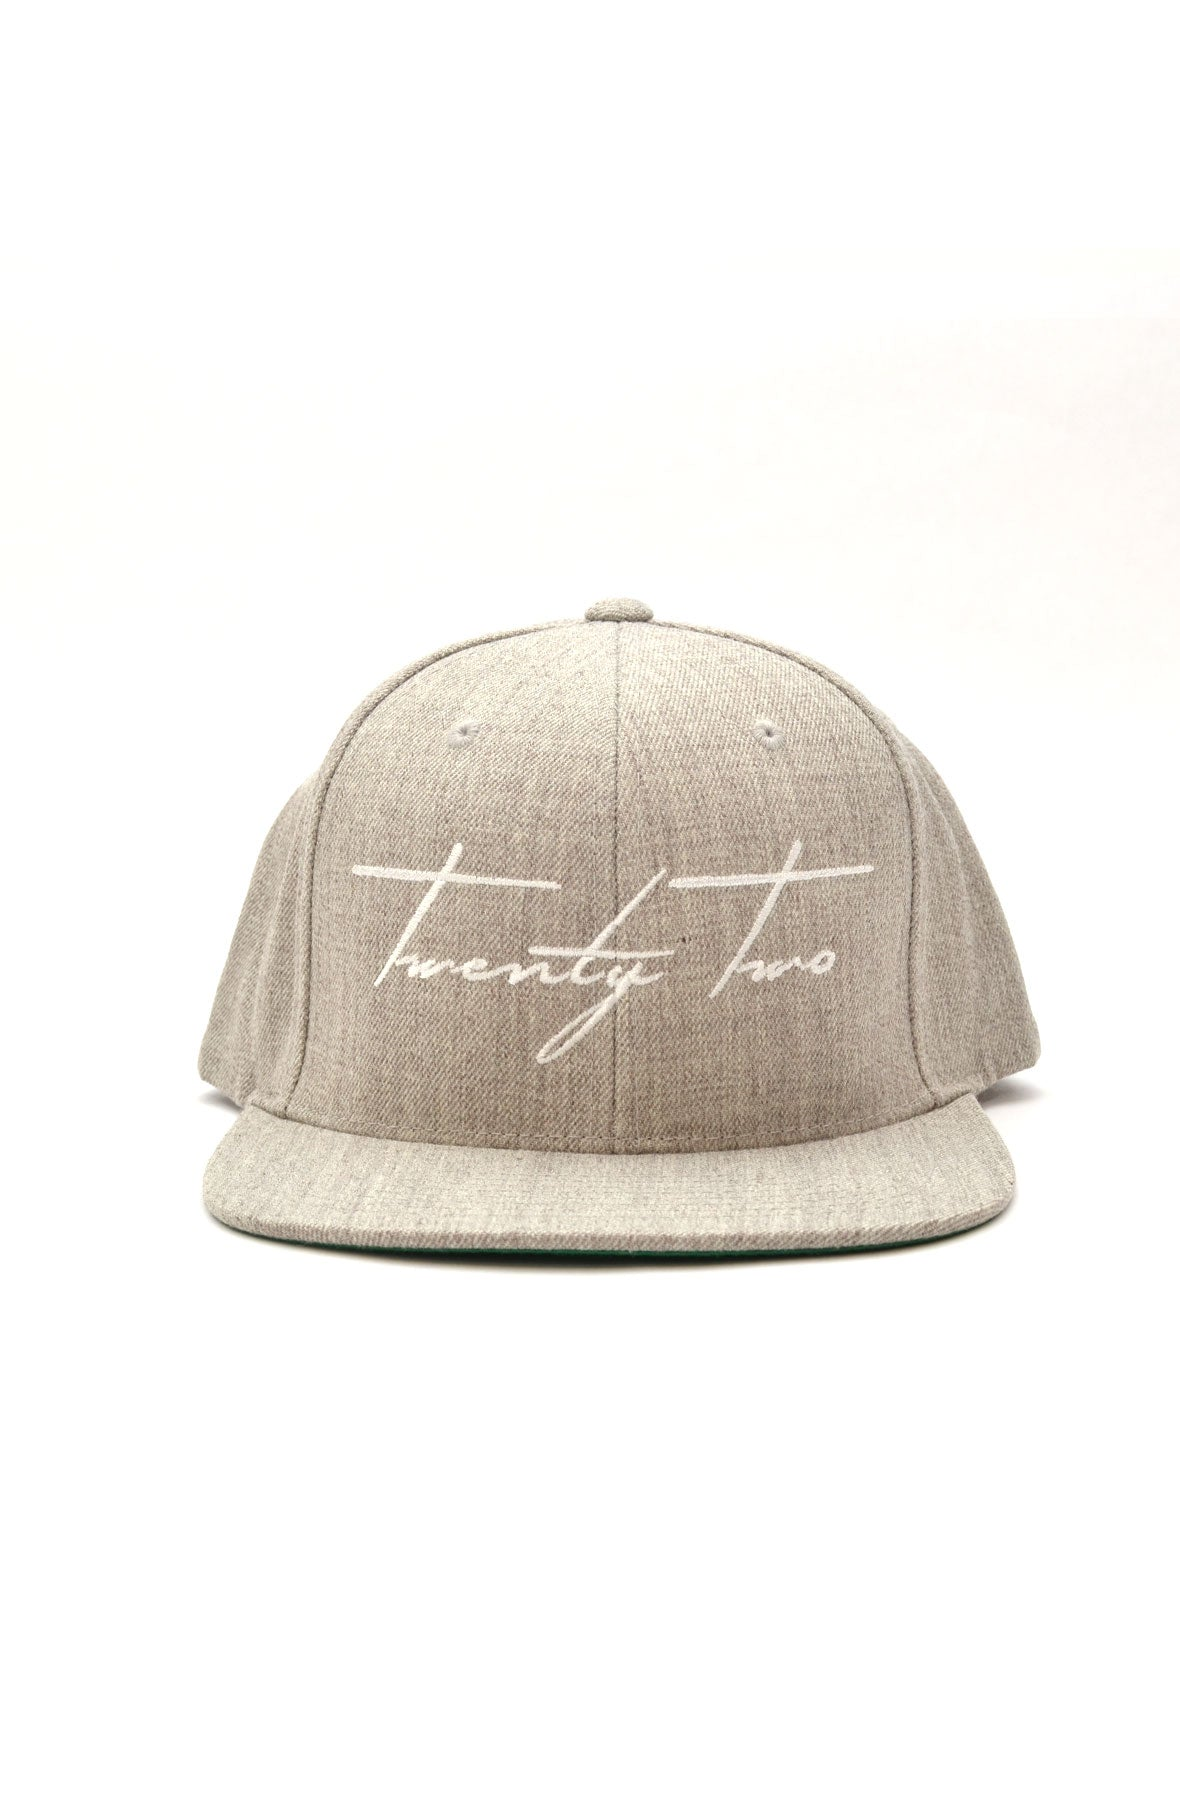 Signature Snapback in Heather Gray/White